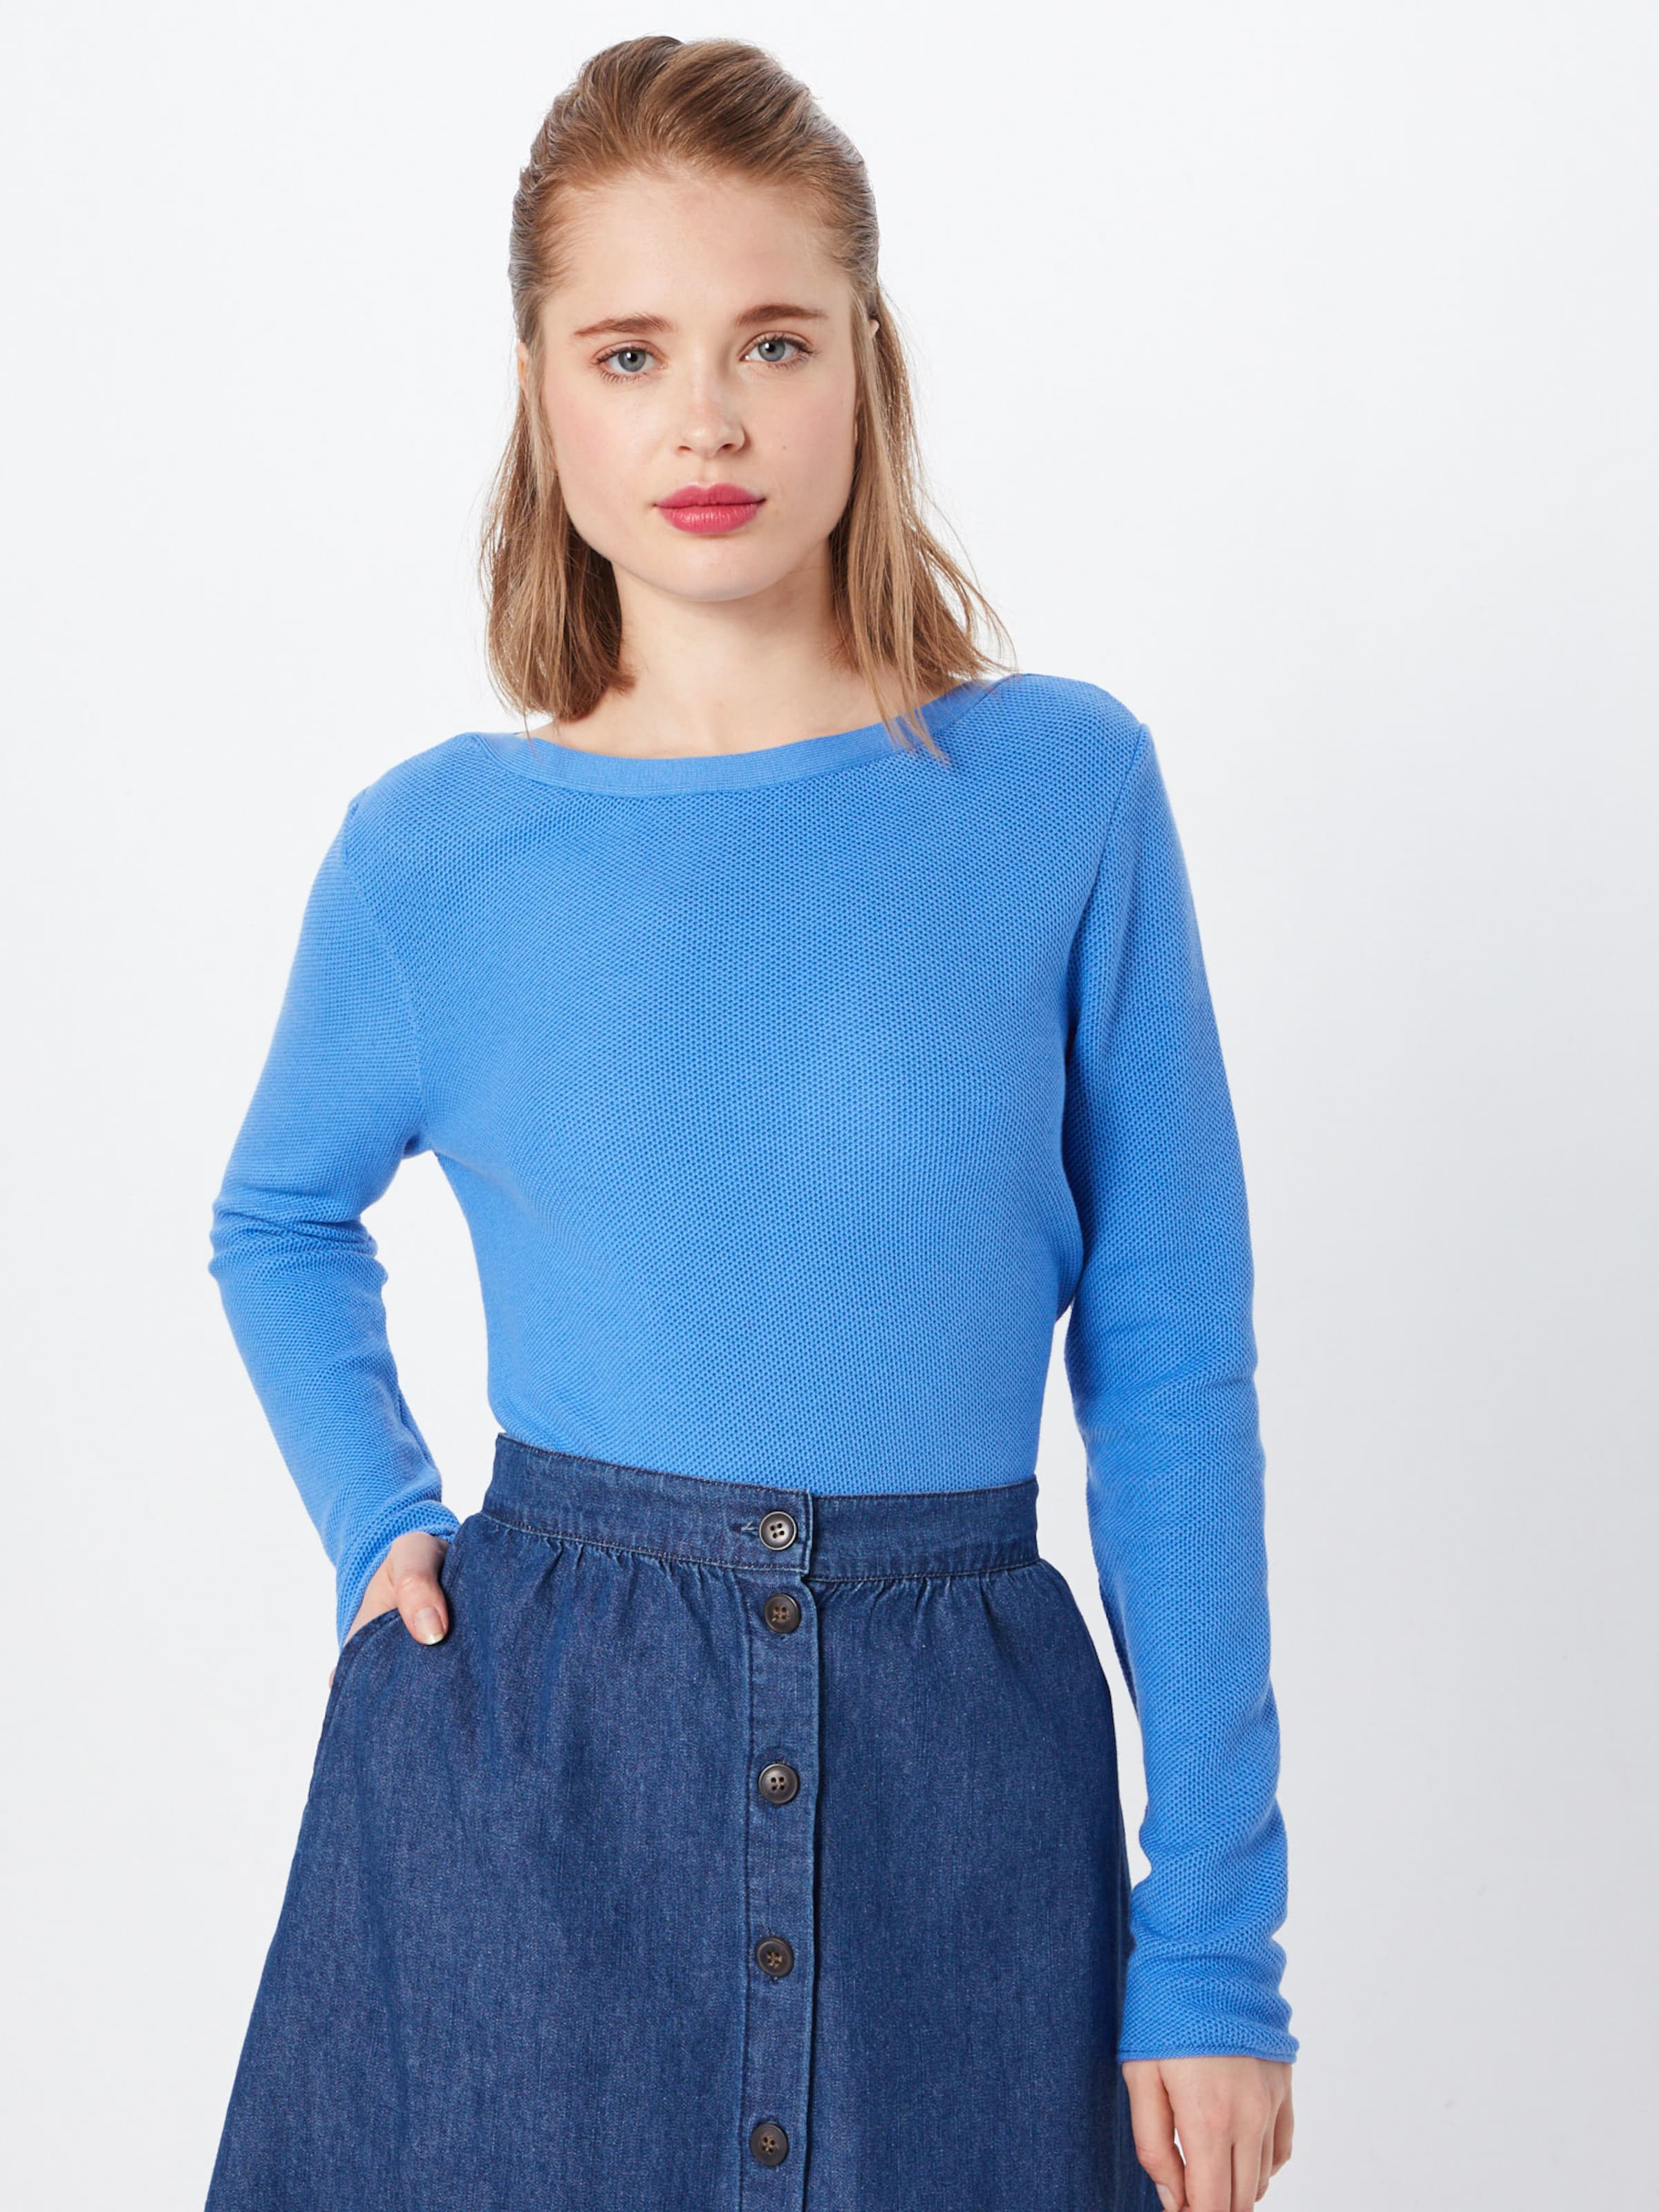 Pullover Street Pullover Blau In One Street One hQtdCxrs